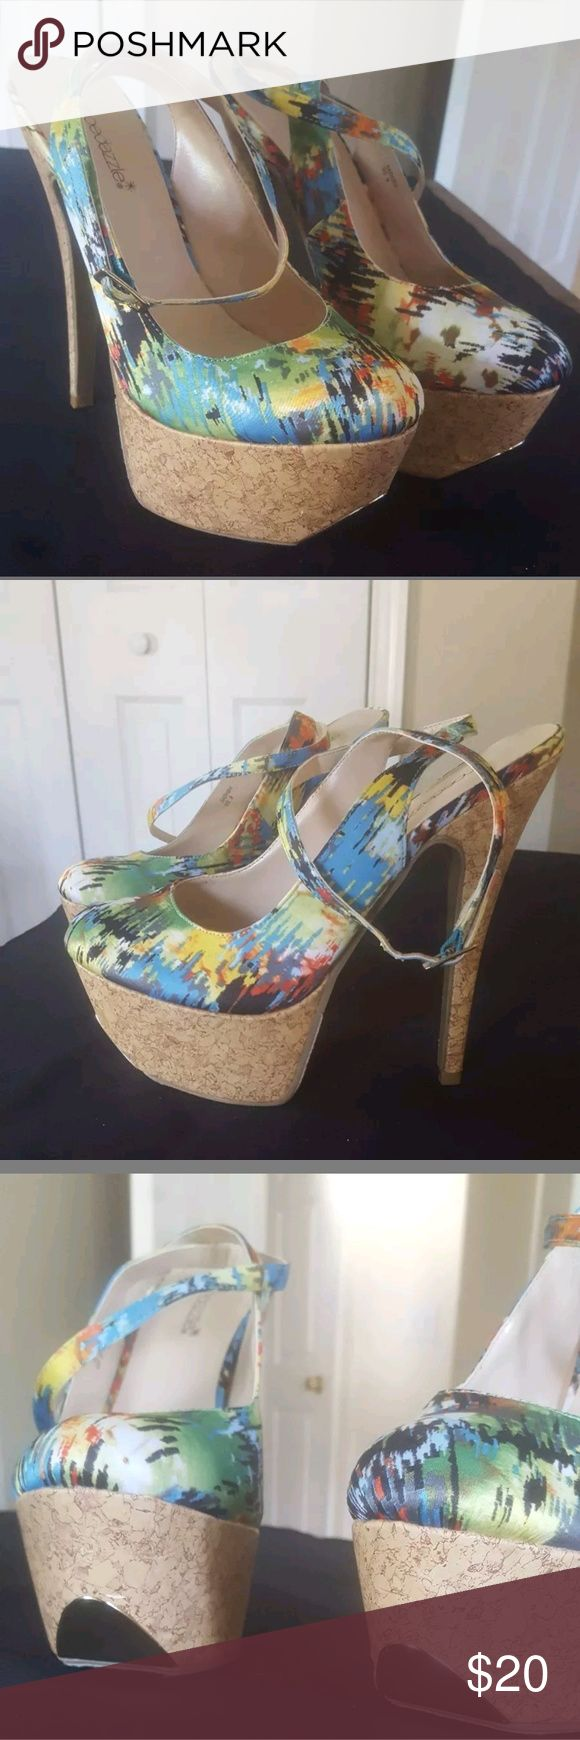 Shoe Dazzle Sinead Green Floral Platform Heel Good condition! Cork heel size 9.. 6 inch heel! See photos! Feel free to message me with any questions and check out my other items! Free Shipping on Fixed Price! 👚👜🛍👗👠 Shoe Dazzle Shoes Heels